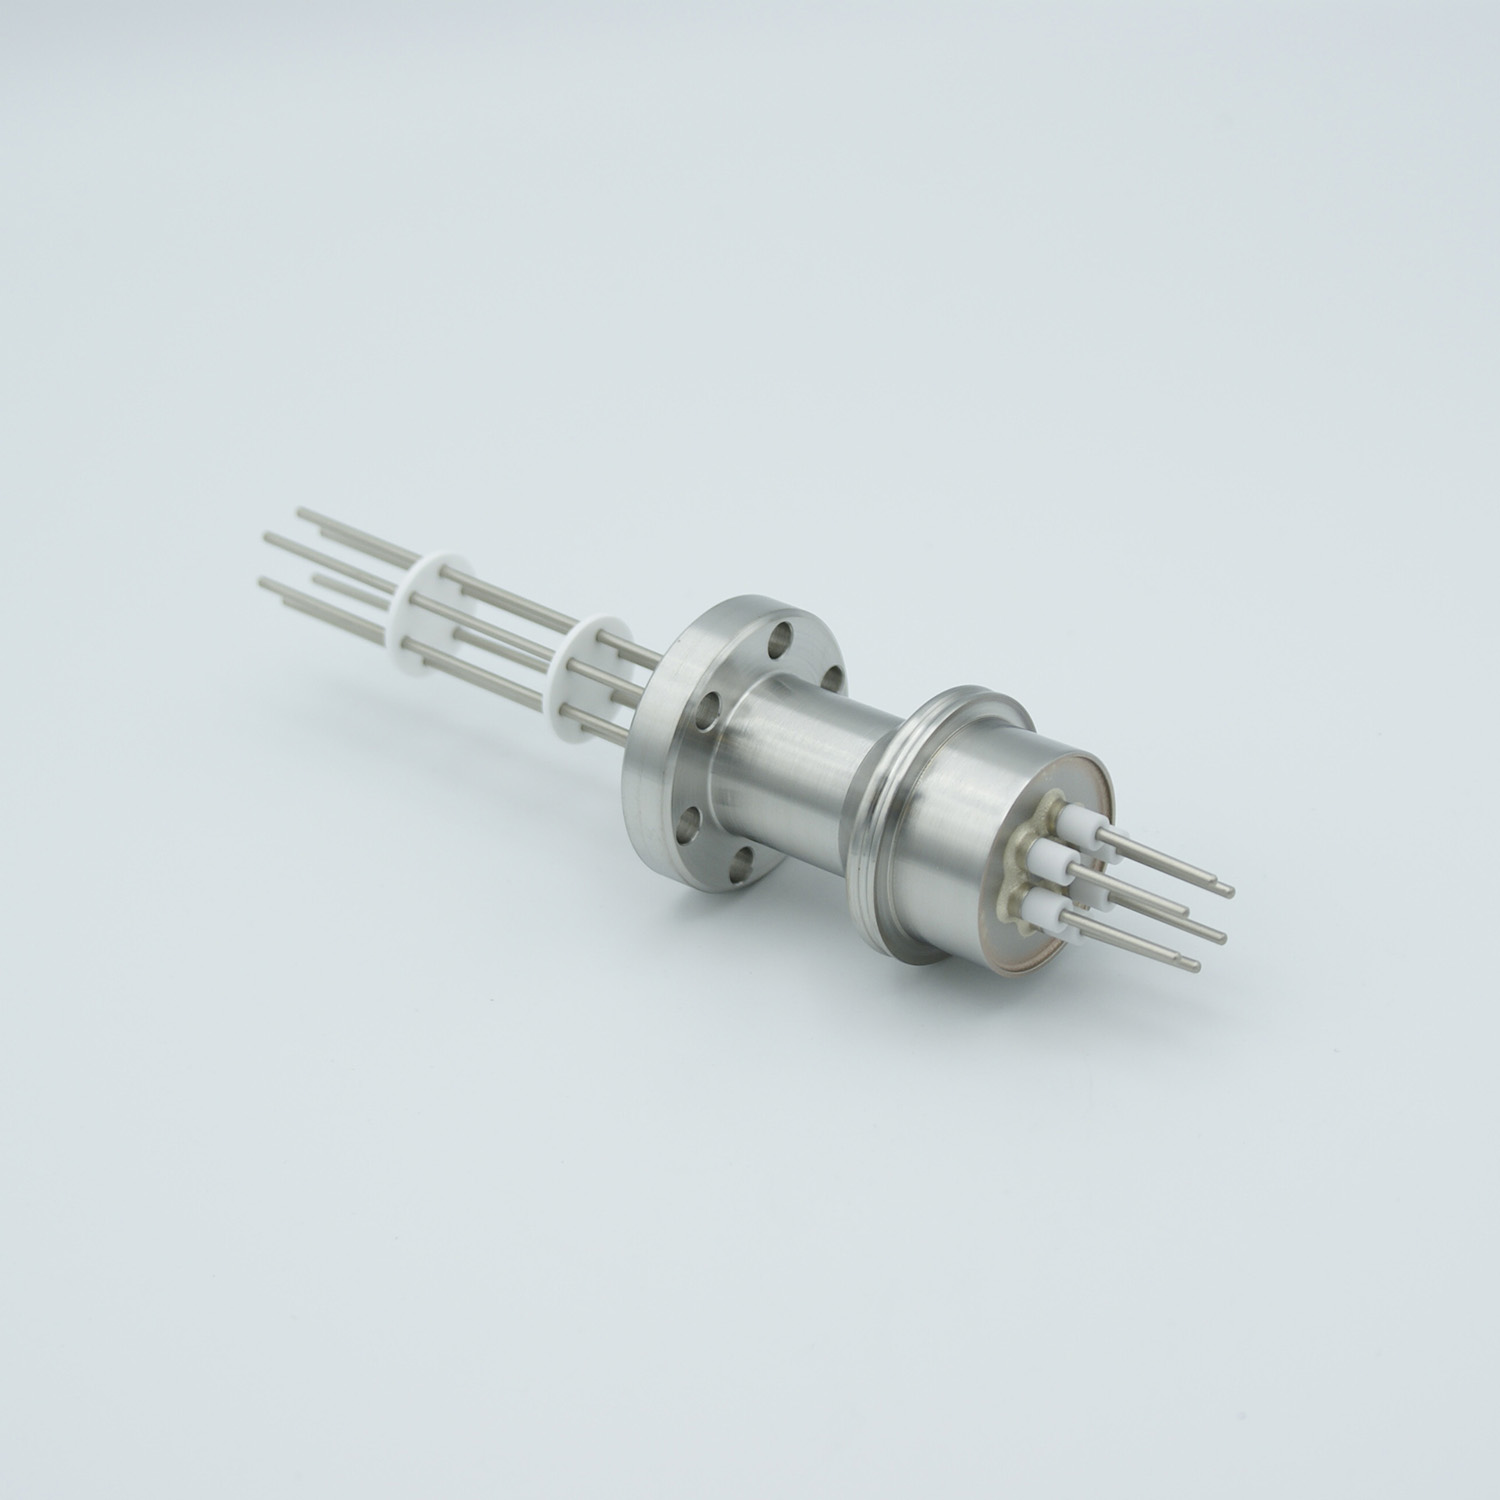 3 pair Thermocouple type-E feedthrough for push on connectors, DN19CF flange